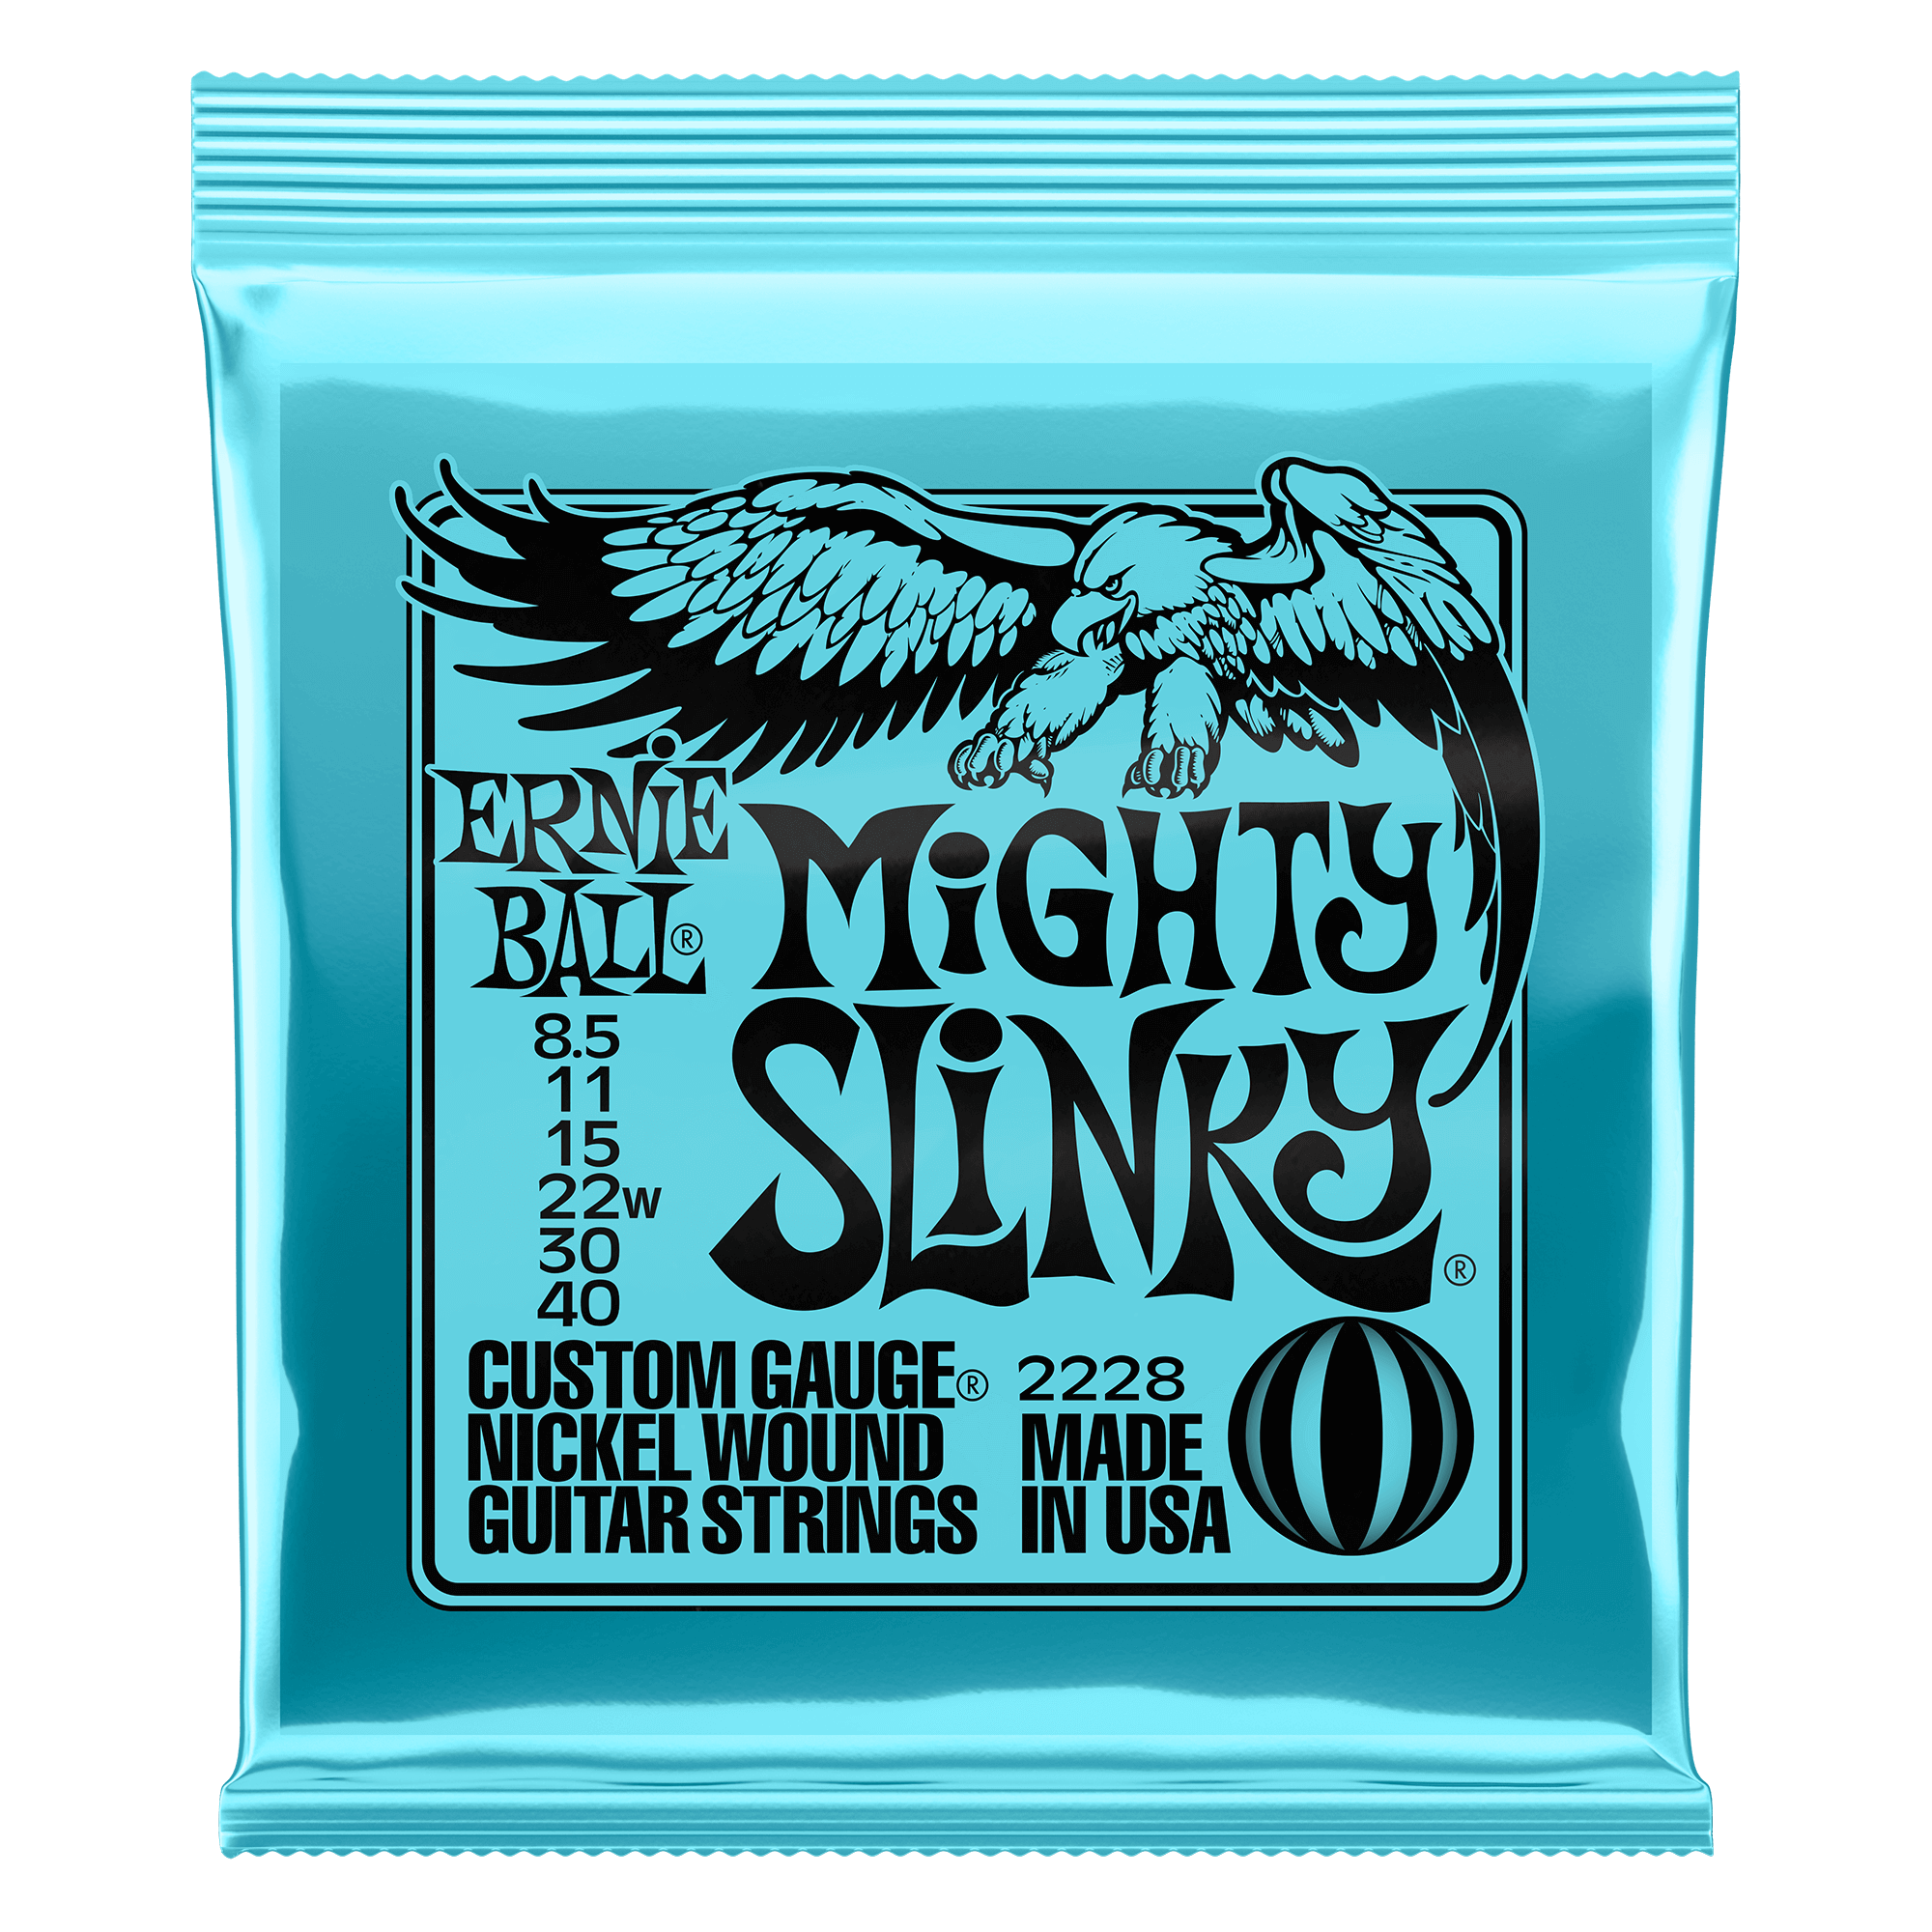 Ernie ball Mighty Slinky Nickel Wound Electric Guitar Strings 8.5 - 40 Gauge Ernieball - HIENDGUITAR.COM